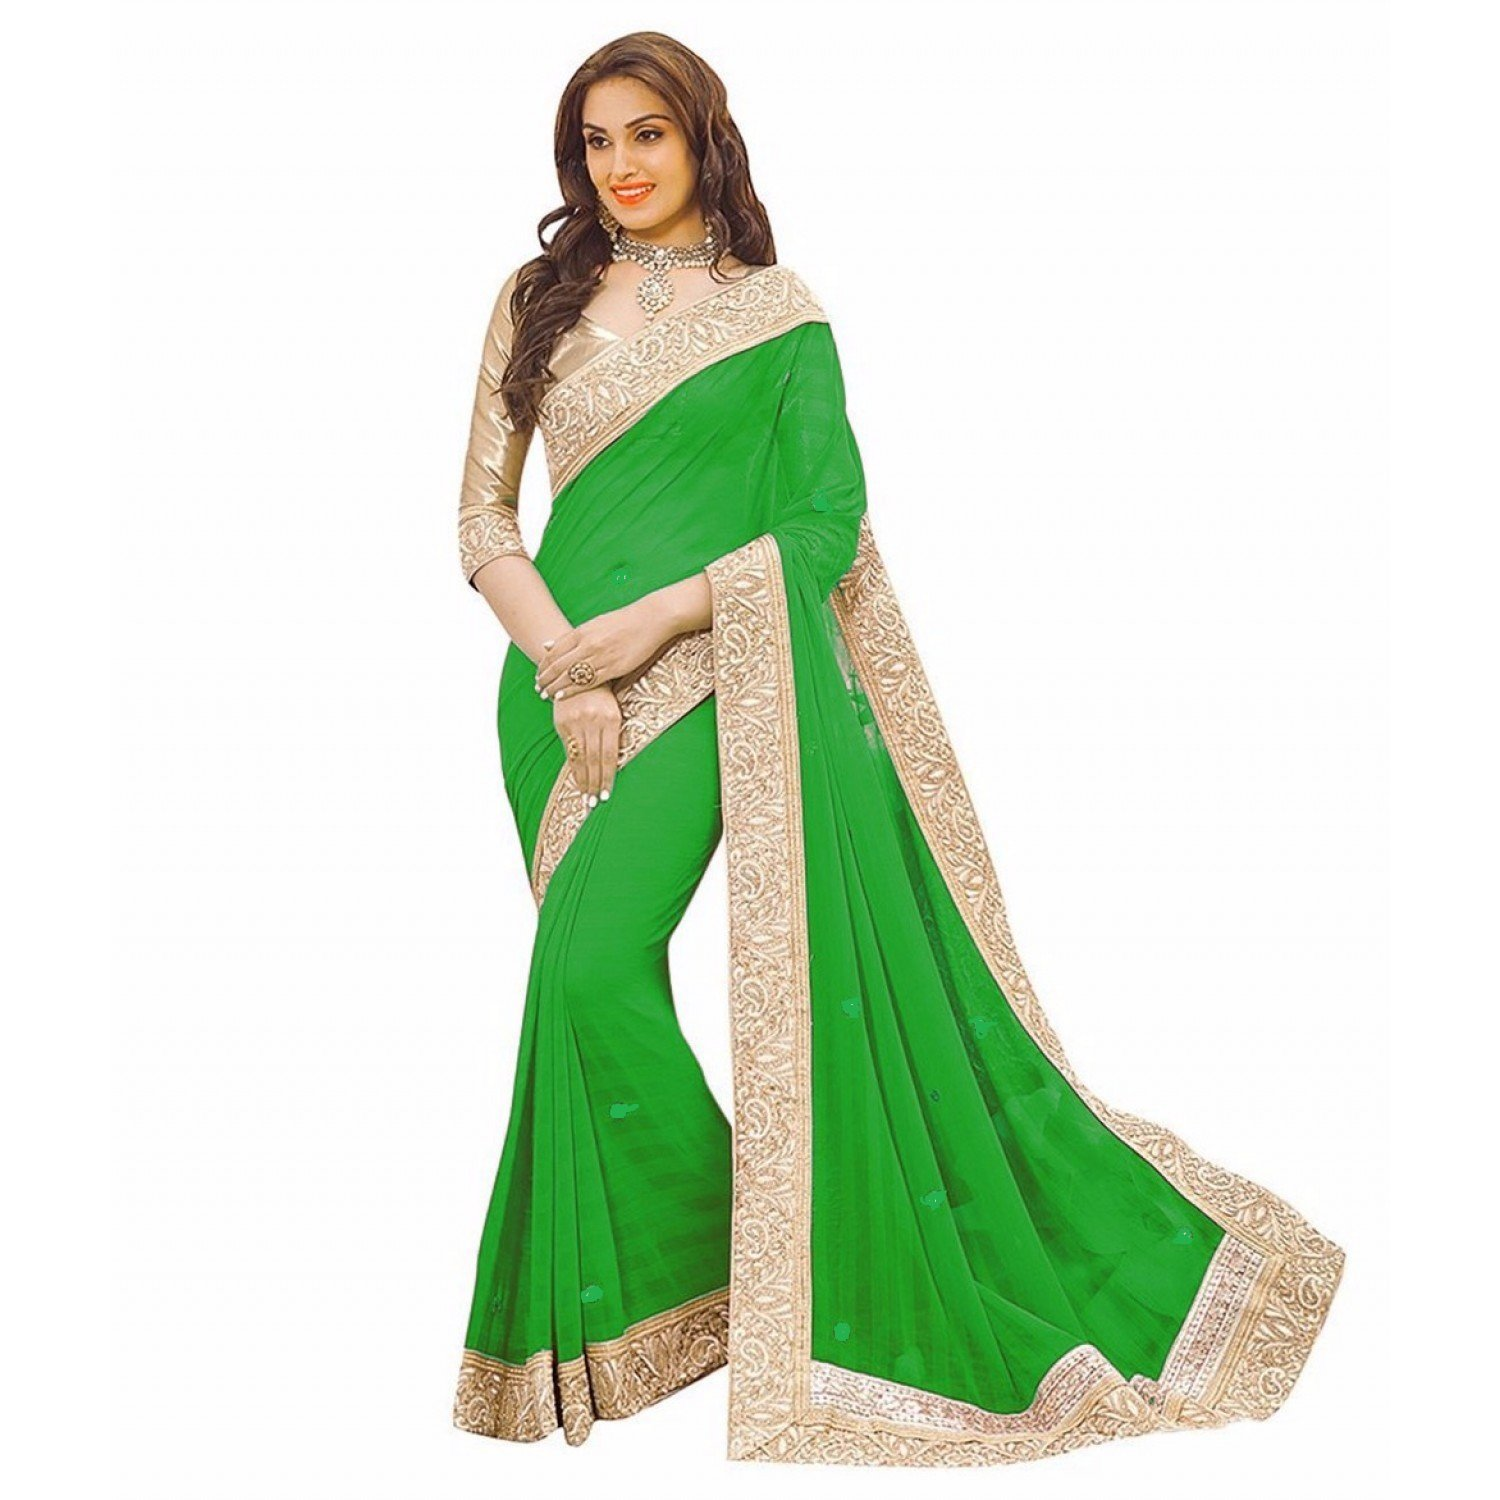 809572bf80 Saree sale for Women Latest design for saree sale Party Wear Buy in ,Today  Offer in Low Price saree Sale,sarees below 500 rupees,new collection, Georgette ...